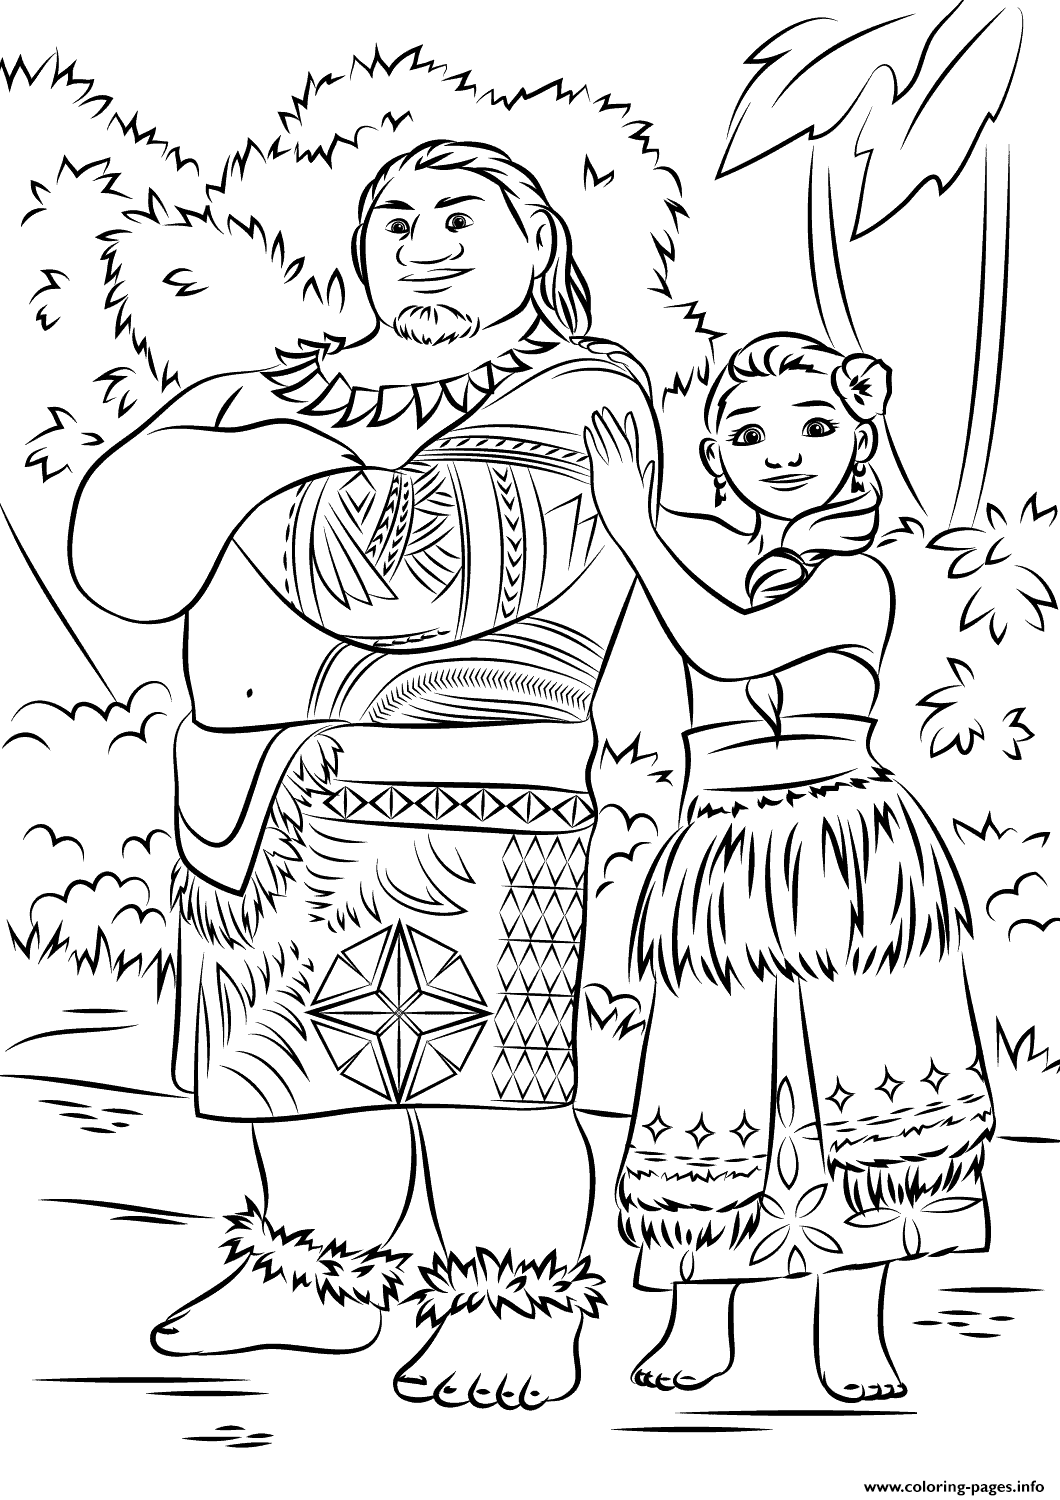 Tui And Sina From Moana Disney Coloring Pages Printable